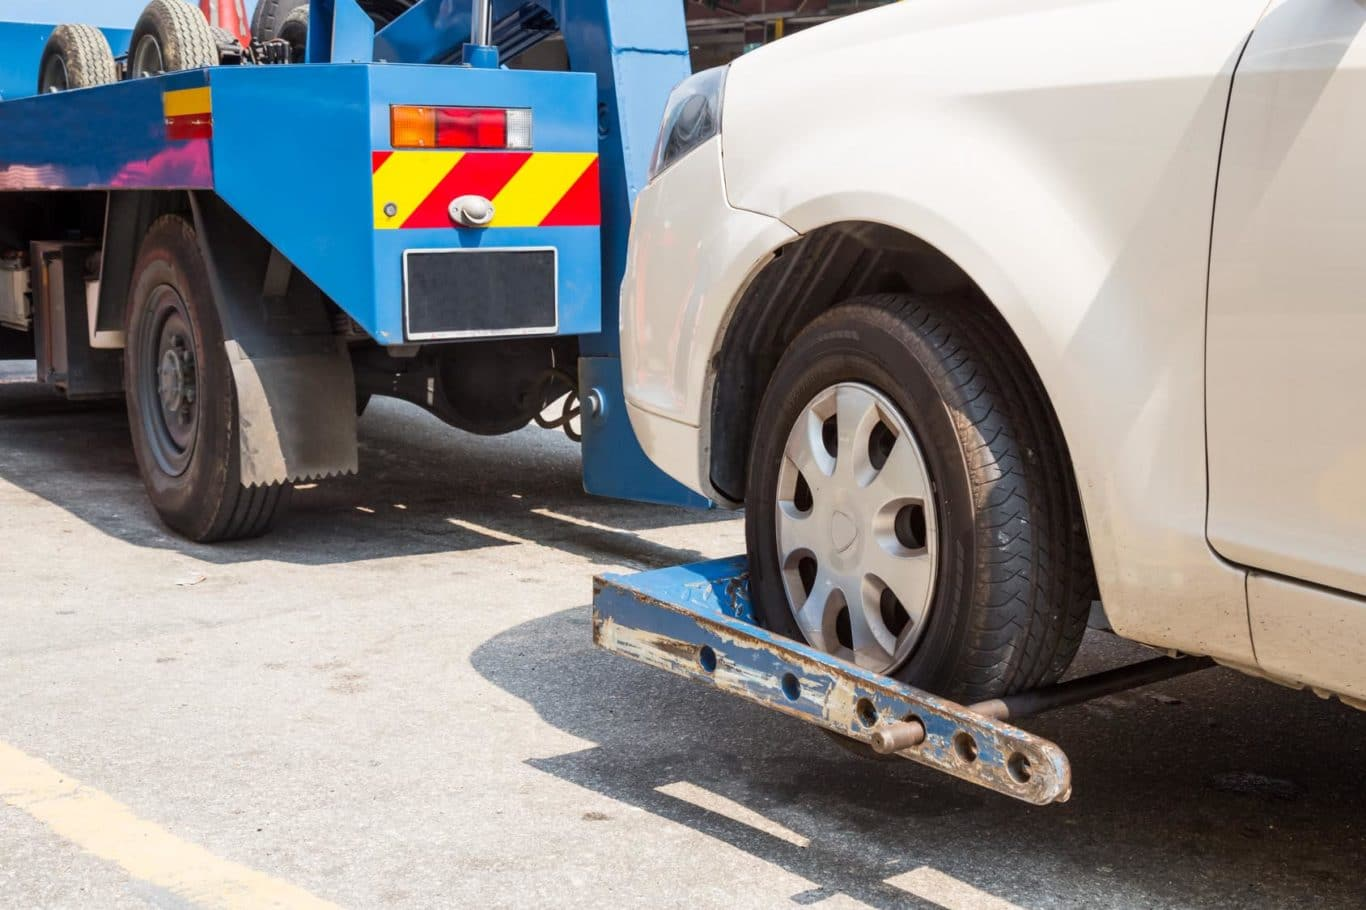 Booterstown expert Towing services